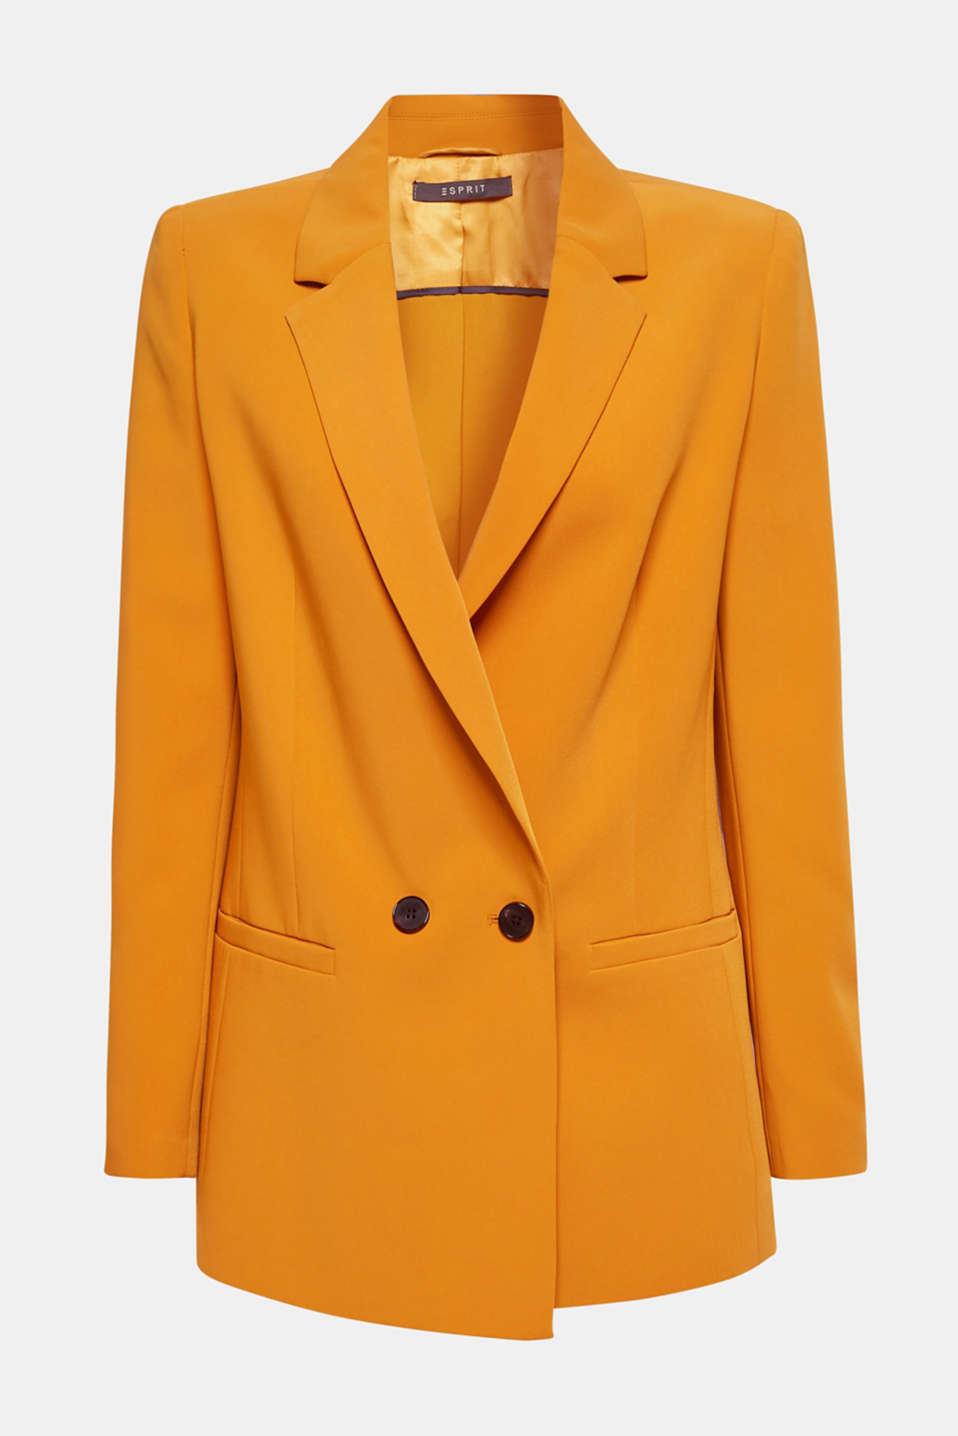 TAILORING mix + match stretch blazer, AMBER YELLOW, detail image number 7